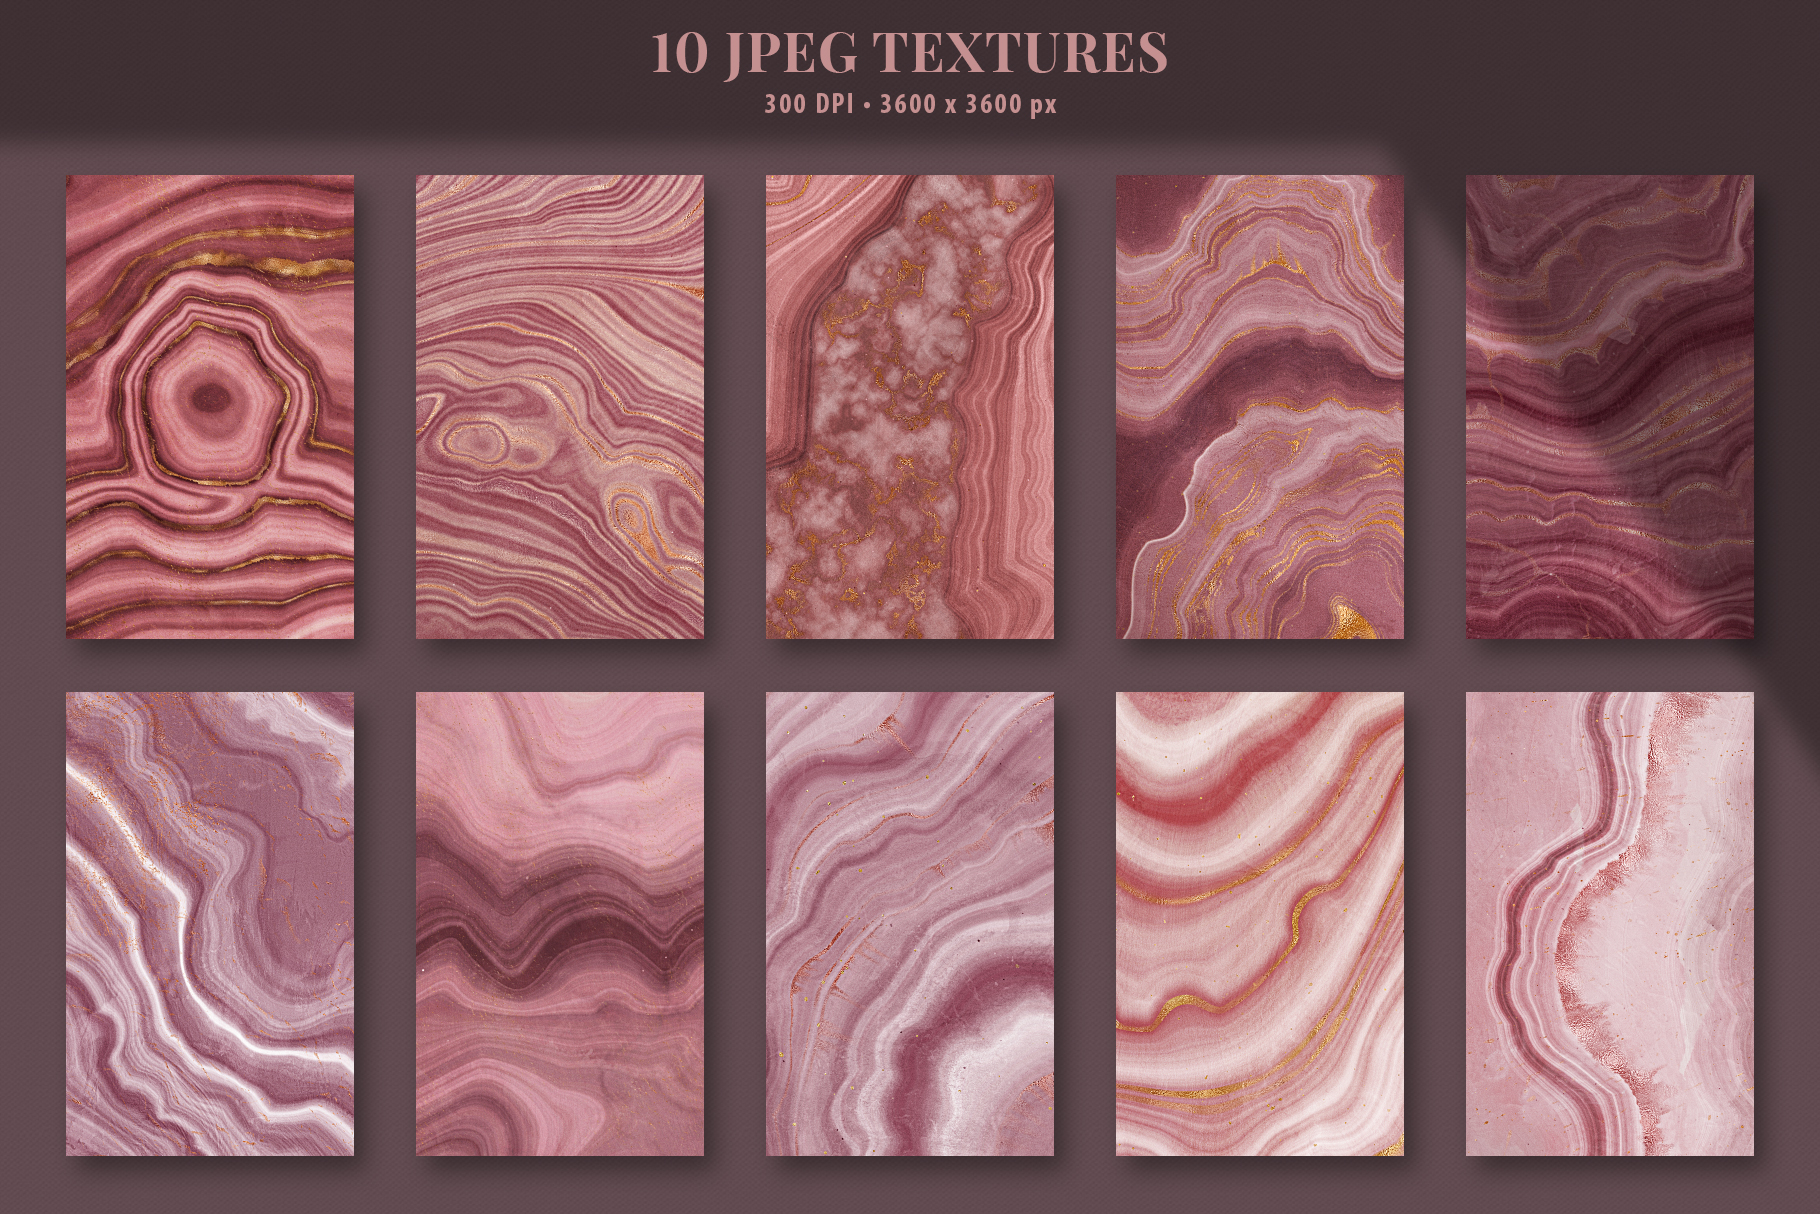 Pink Agate Illustrations, Textures & Patterns example image 2